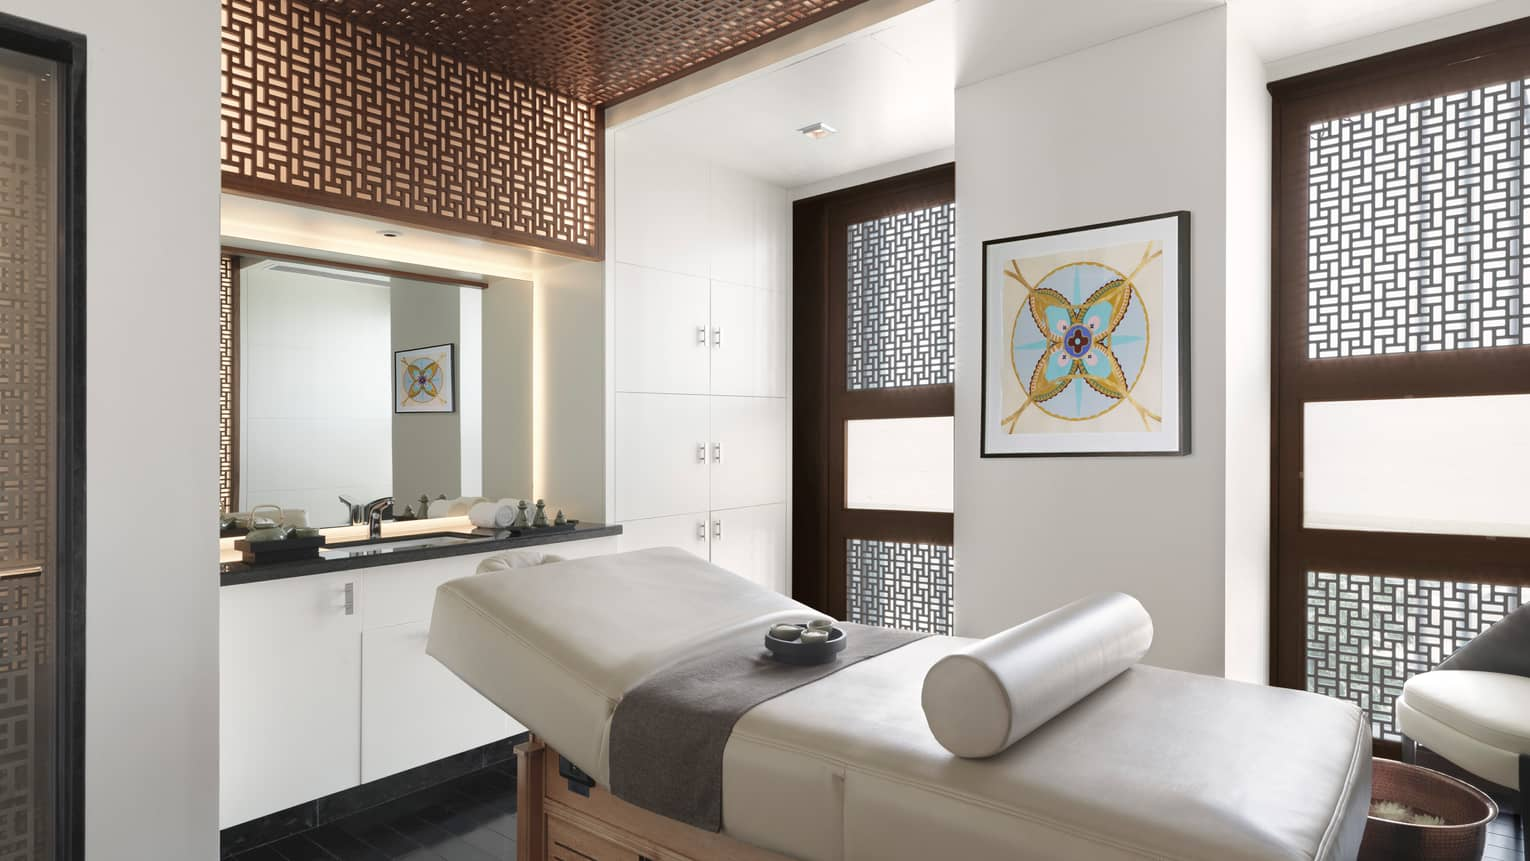 Spa massage table with rolled white leather pillow in front of vanity with sink, two windows